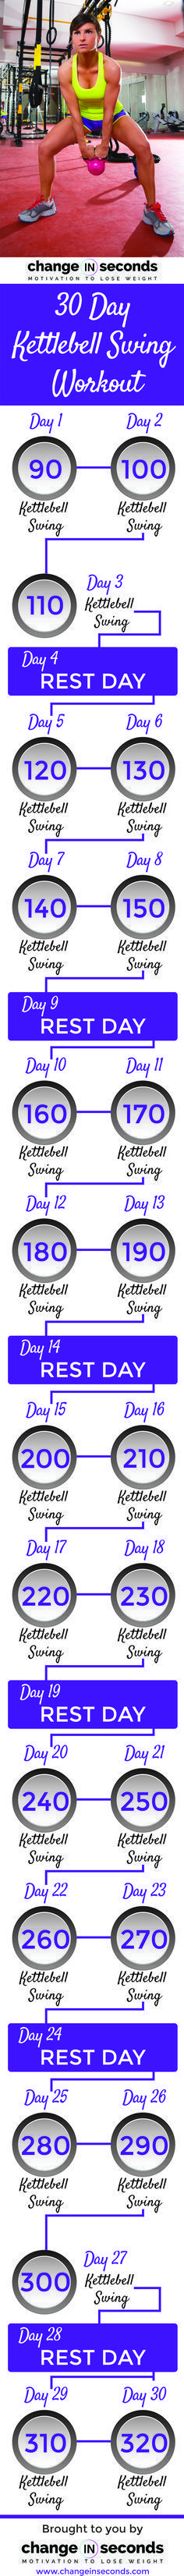 30 Day Kettlebell Swing Workout For Rapid Fat Loss